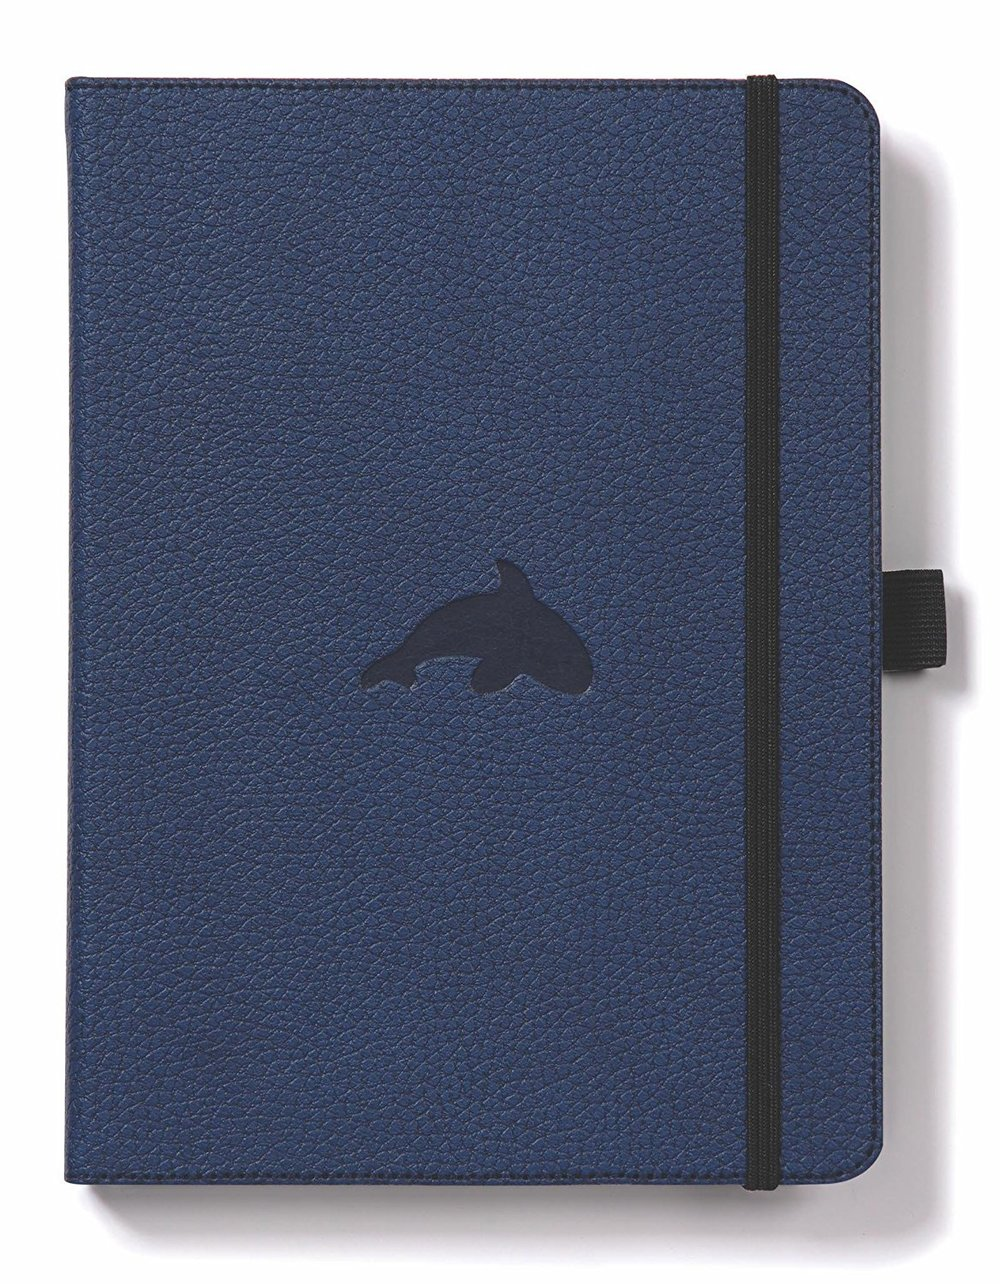 Blue Dolphin Dingbats Journal